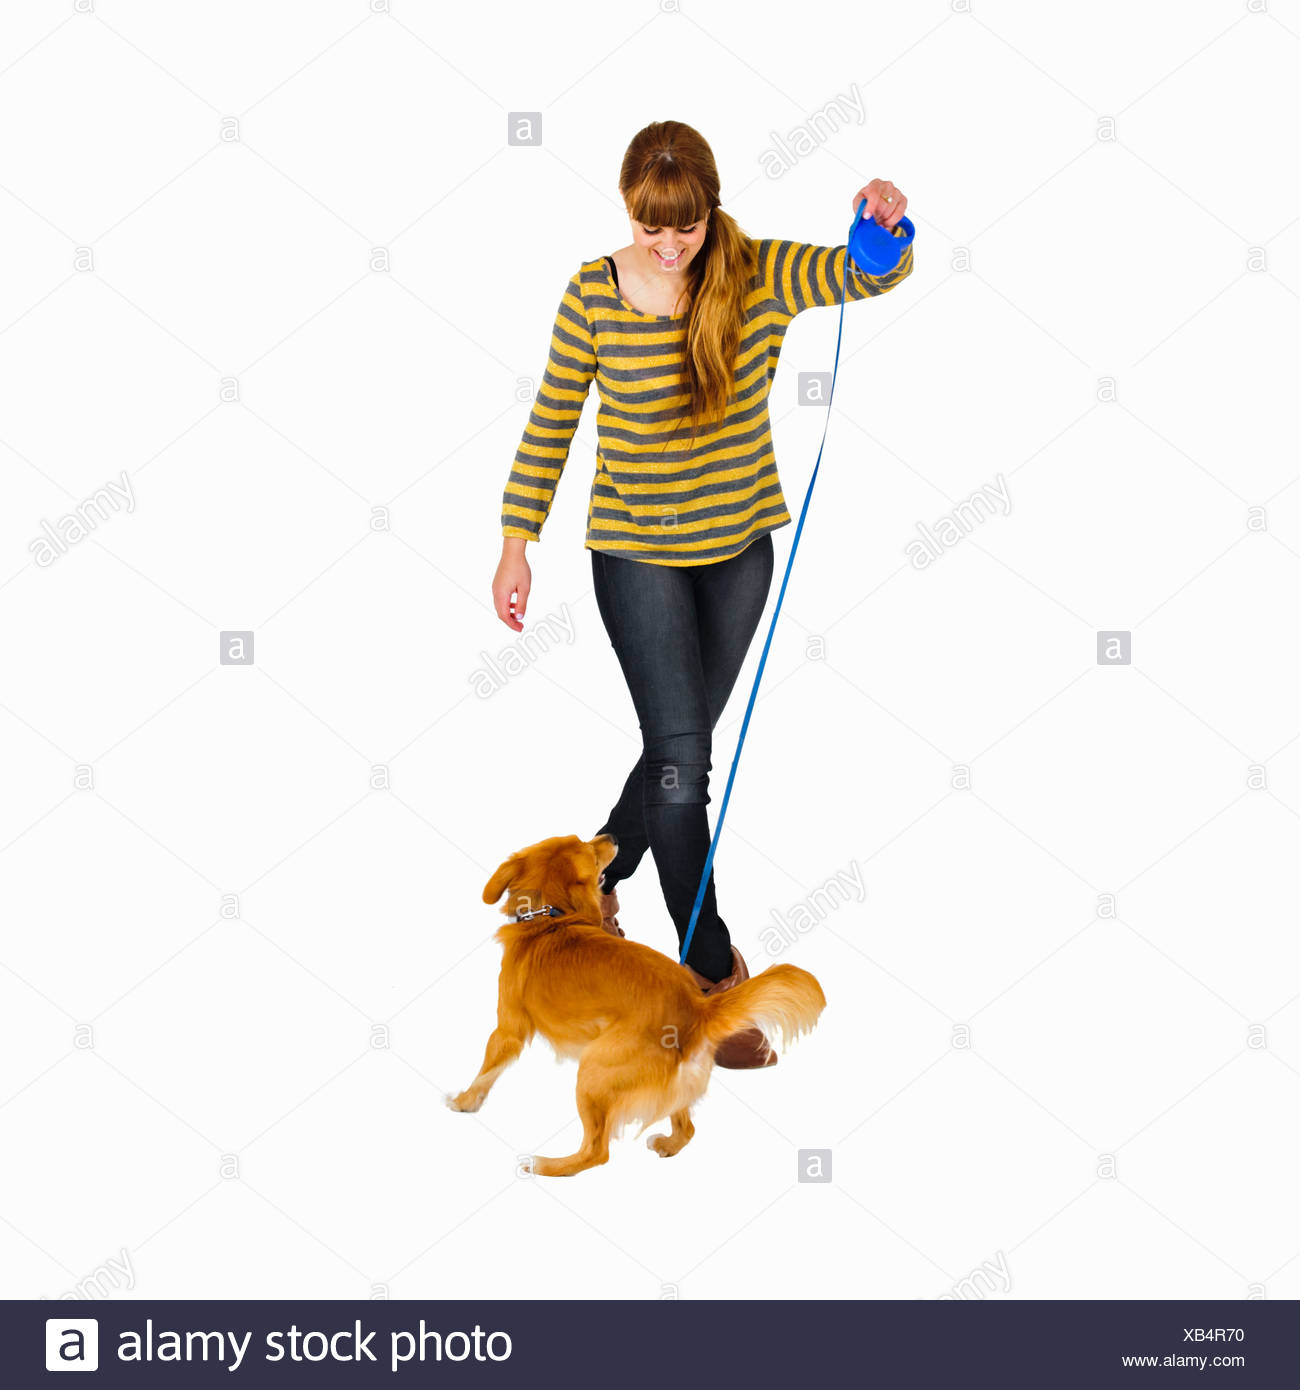 Smiling woman walking dog - Stock Image